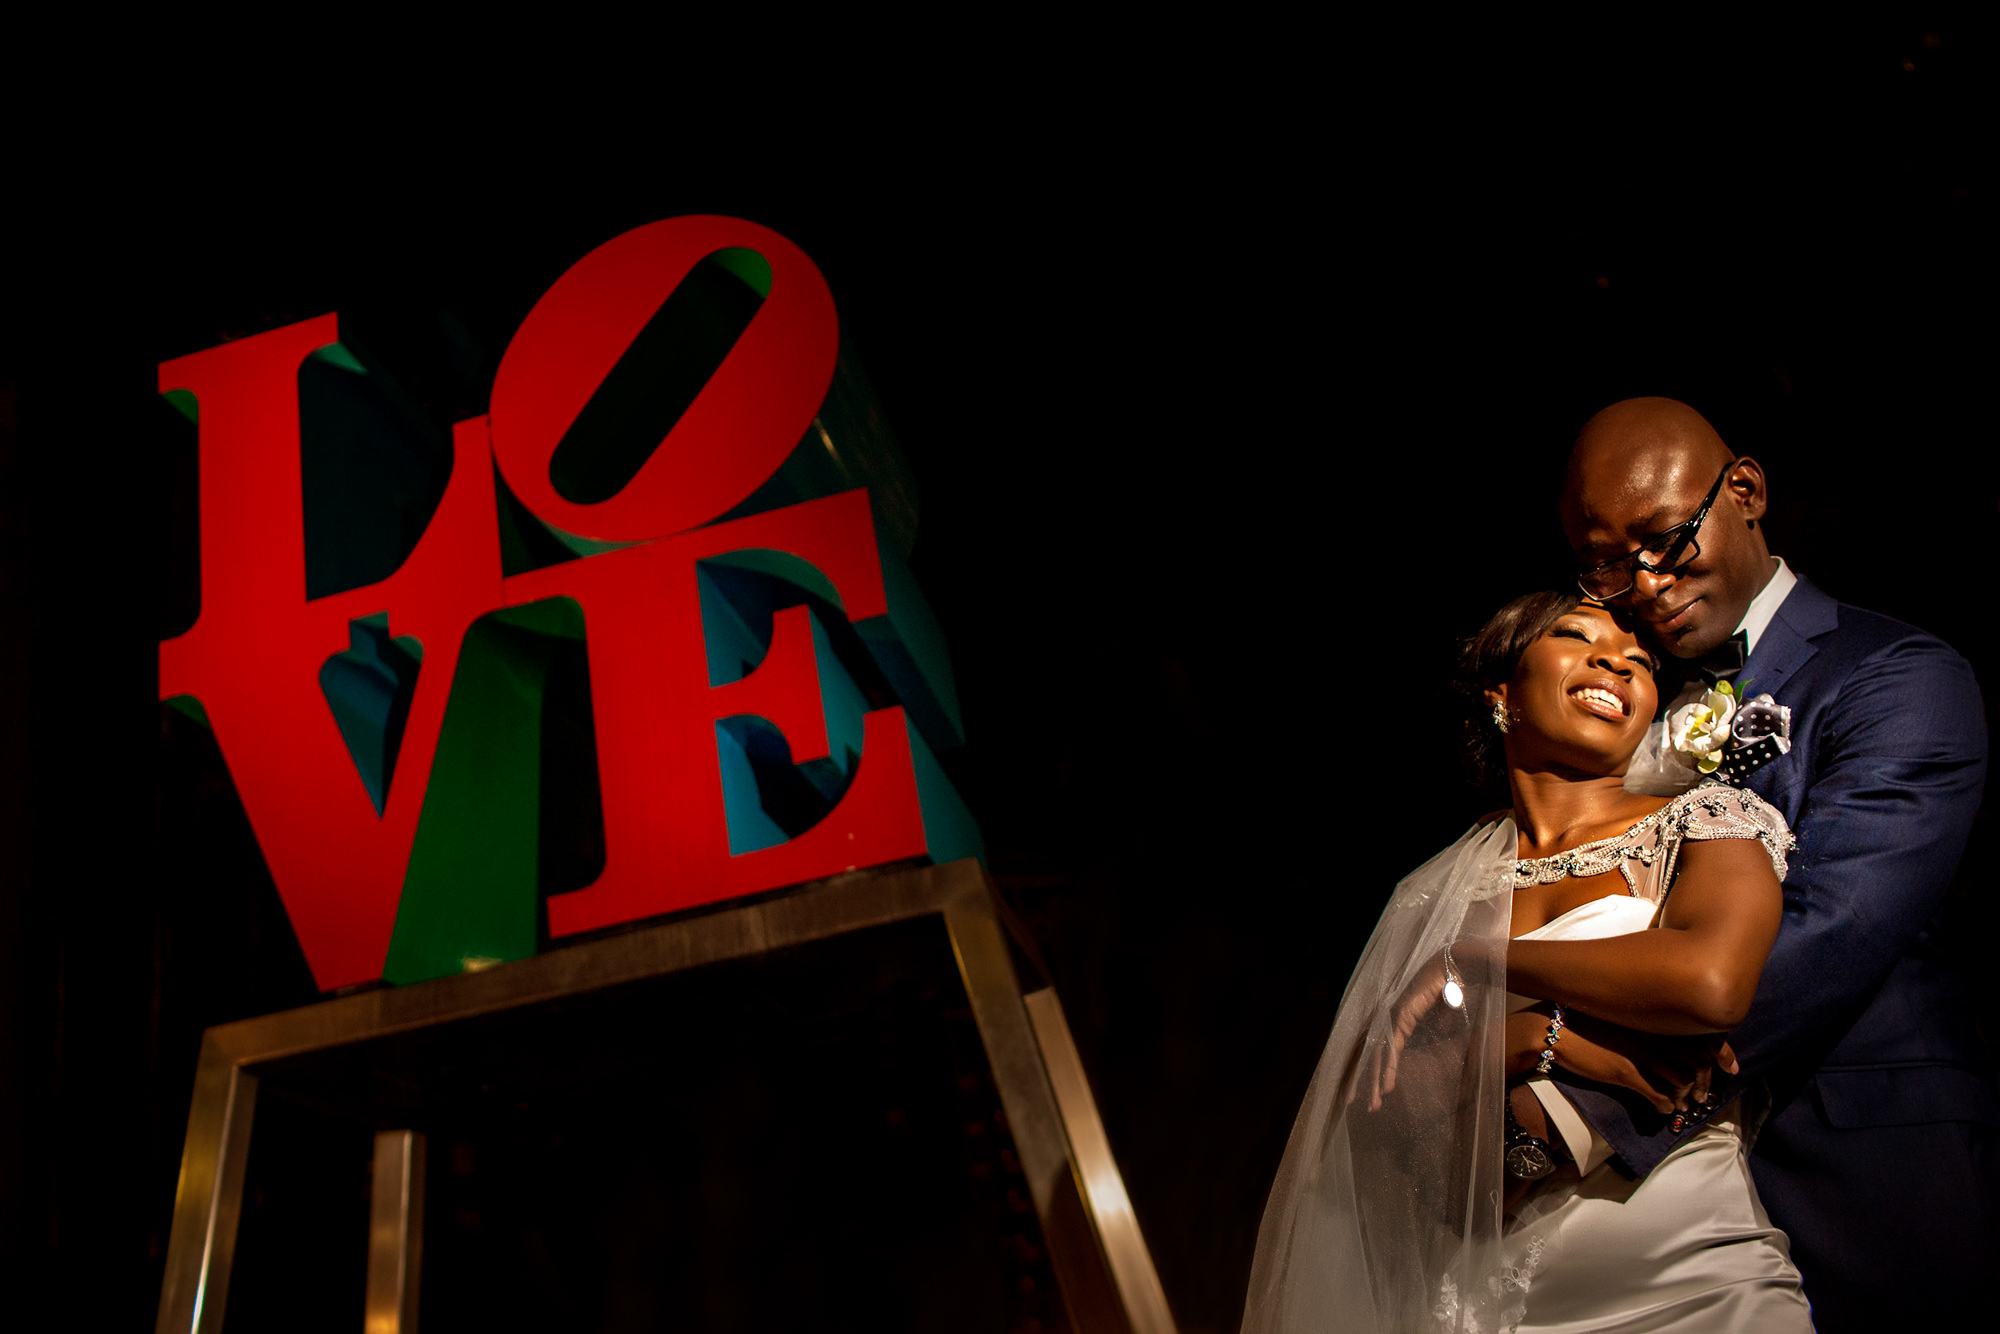 Bride and groom with iconic love sign - photo by Jide Alakija